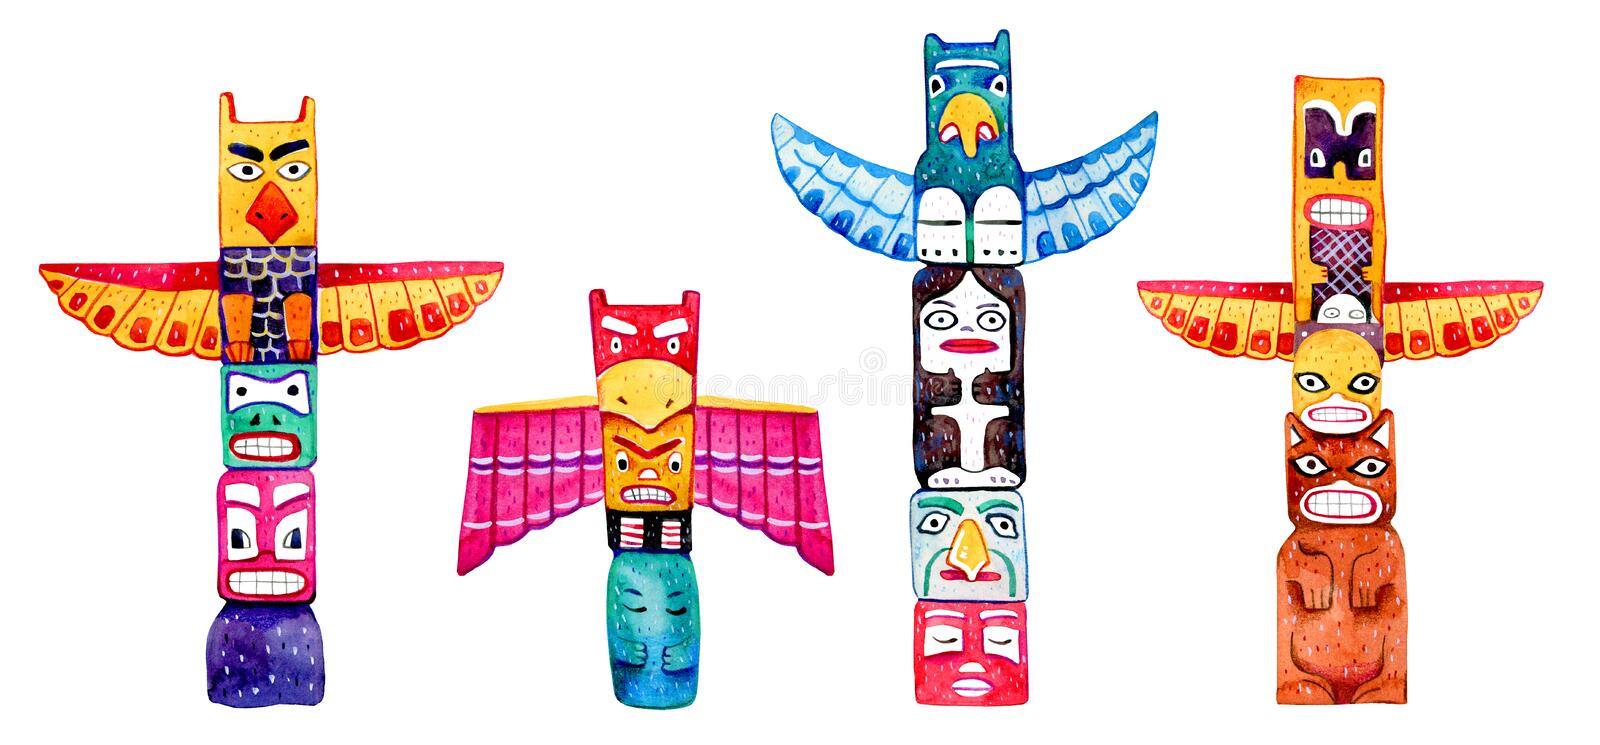 Native American traditional totem poles. Hand drawn watercolor illustration set. Group of four carved wooden figures stock illustration